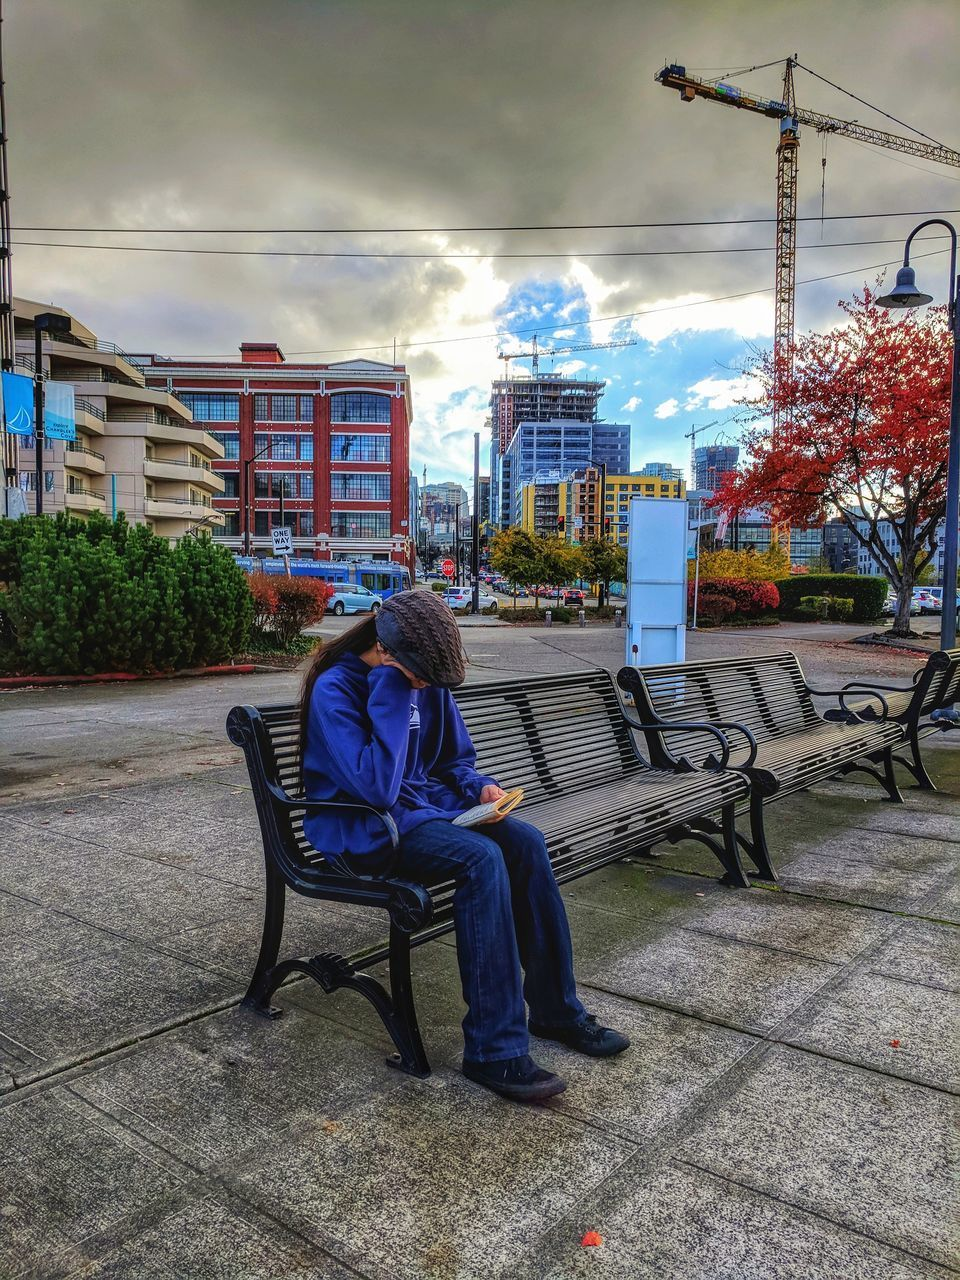 FULL LENGTH REAR VIEW OF WOMAN SITTING IN CITY